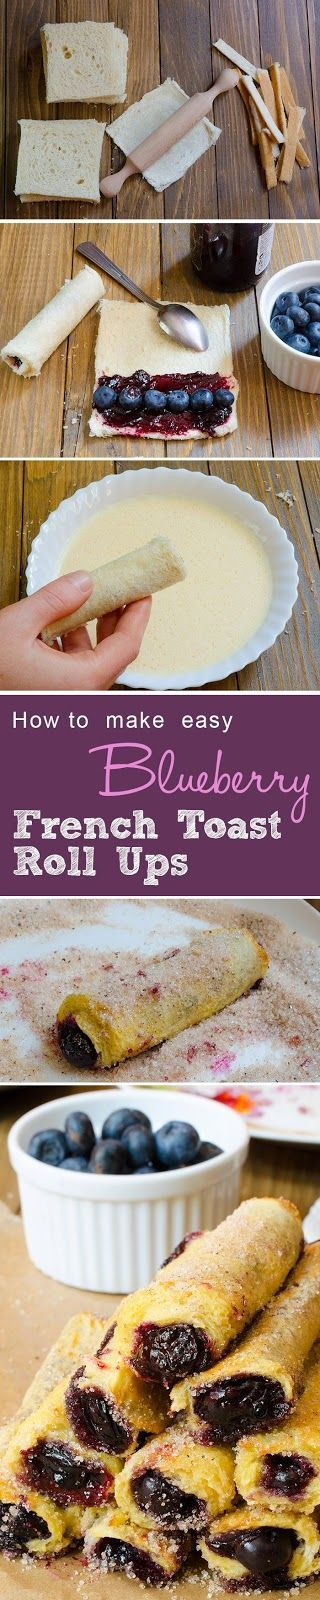 Perfect Blueberry French Toast Roll Ups